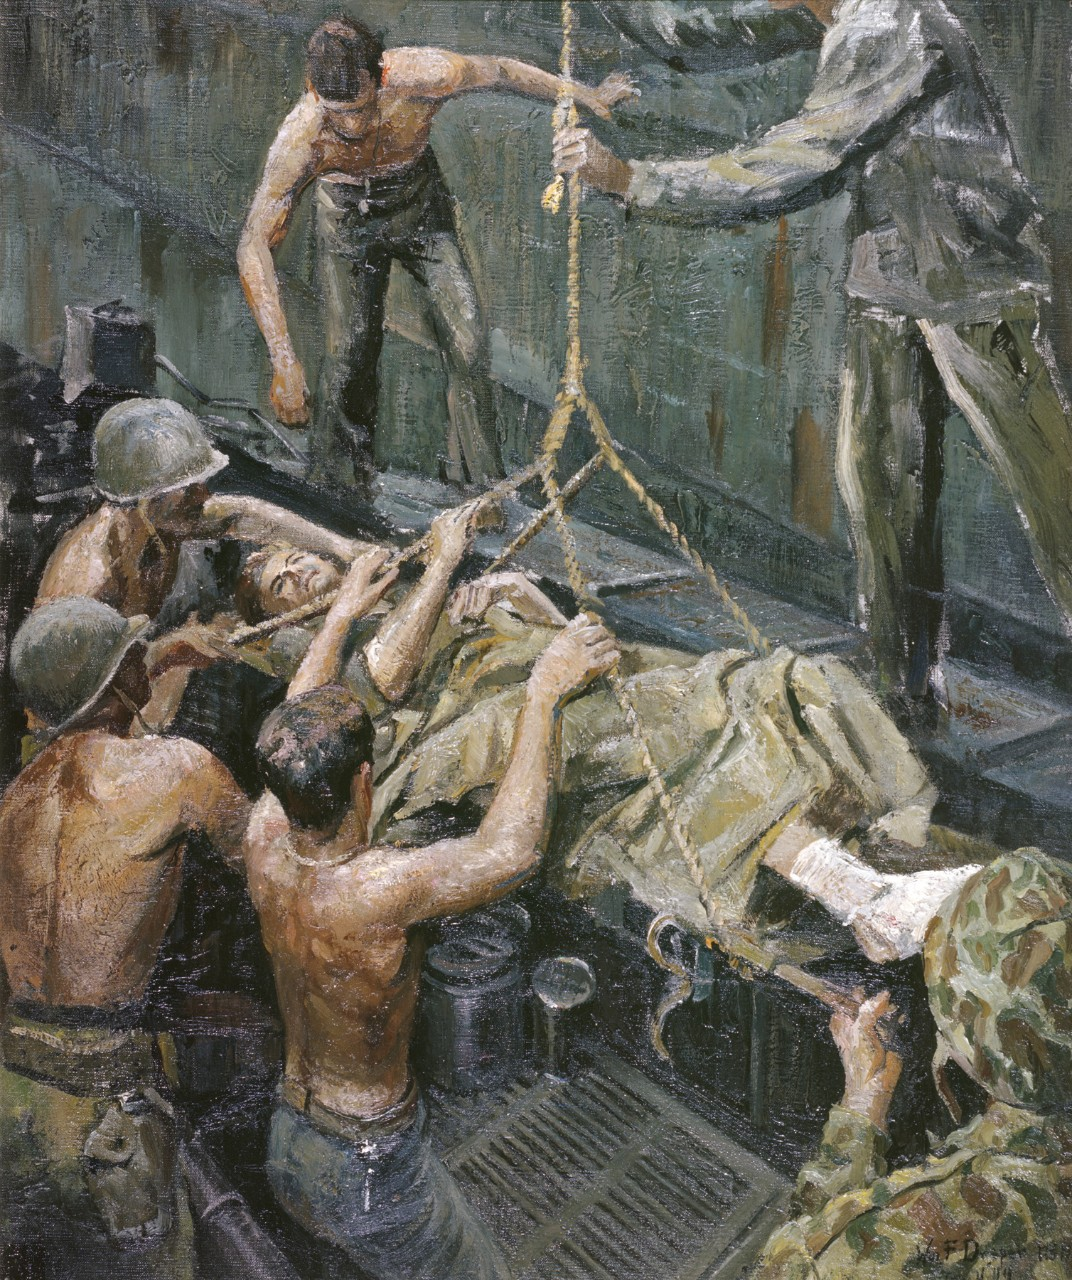 A wounded man being brought aboard a ship